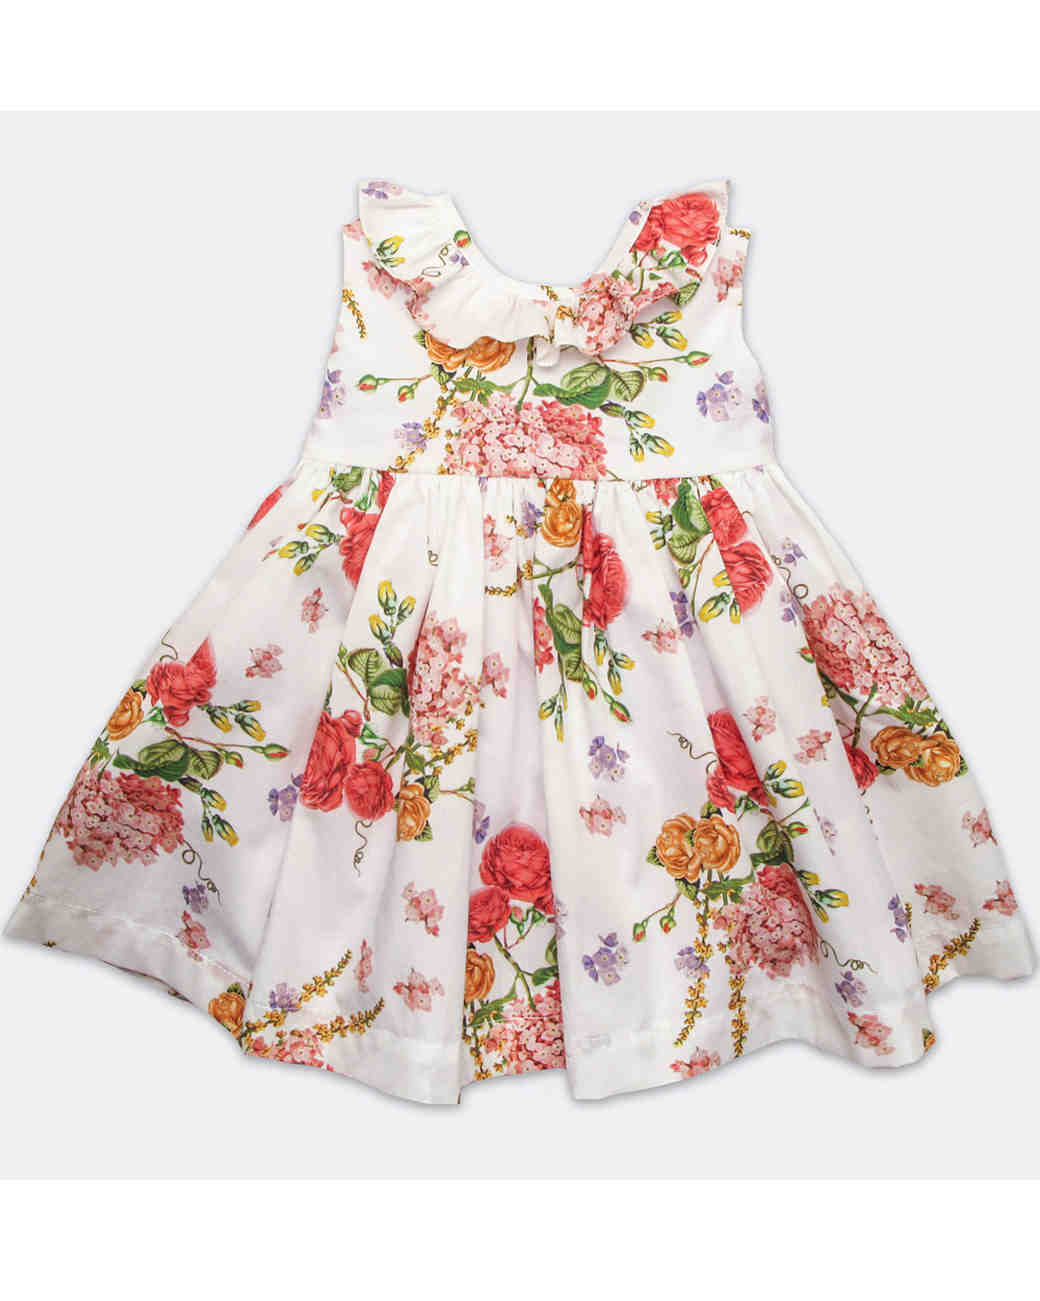 flower-girl-dress-baby-cz-floral-ruffle-collar-0316.jpg